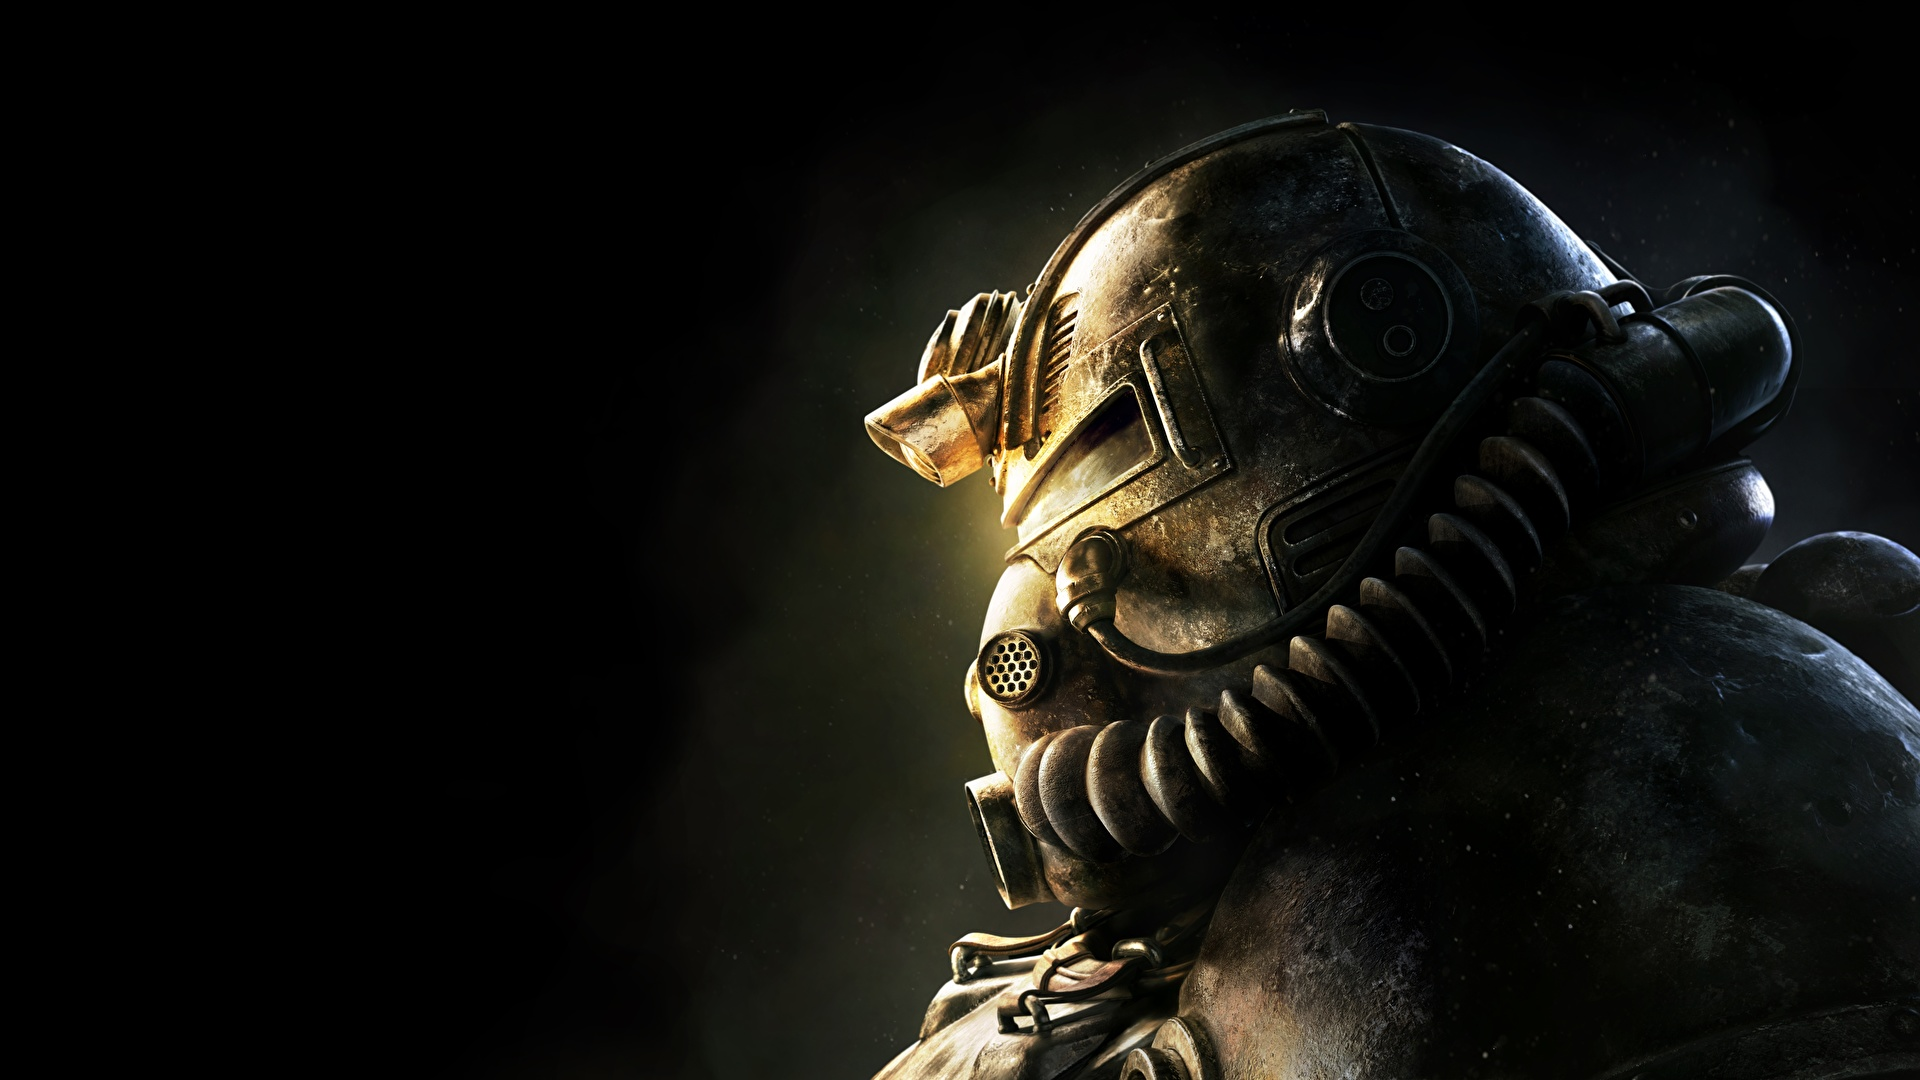 Pictures Brotherhood Of Steel Fallout 76 Games 1920x1080